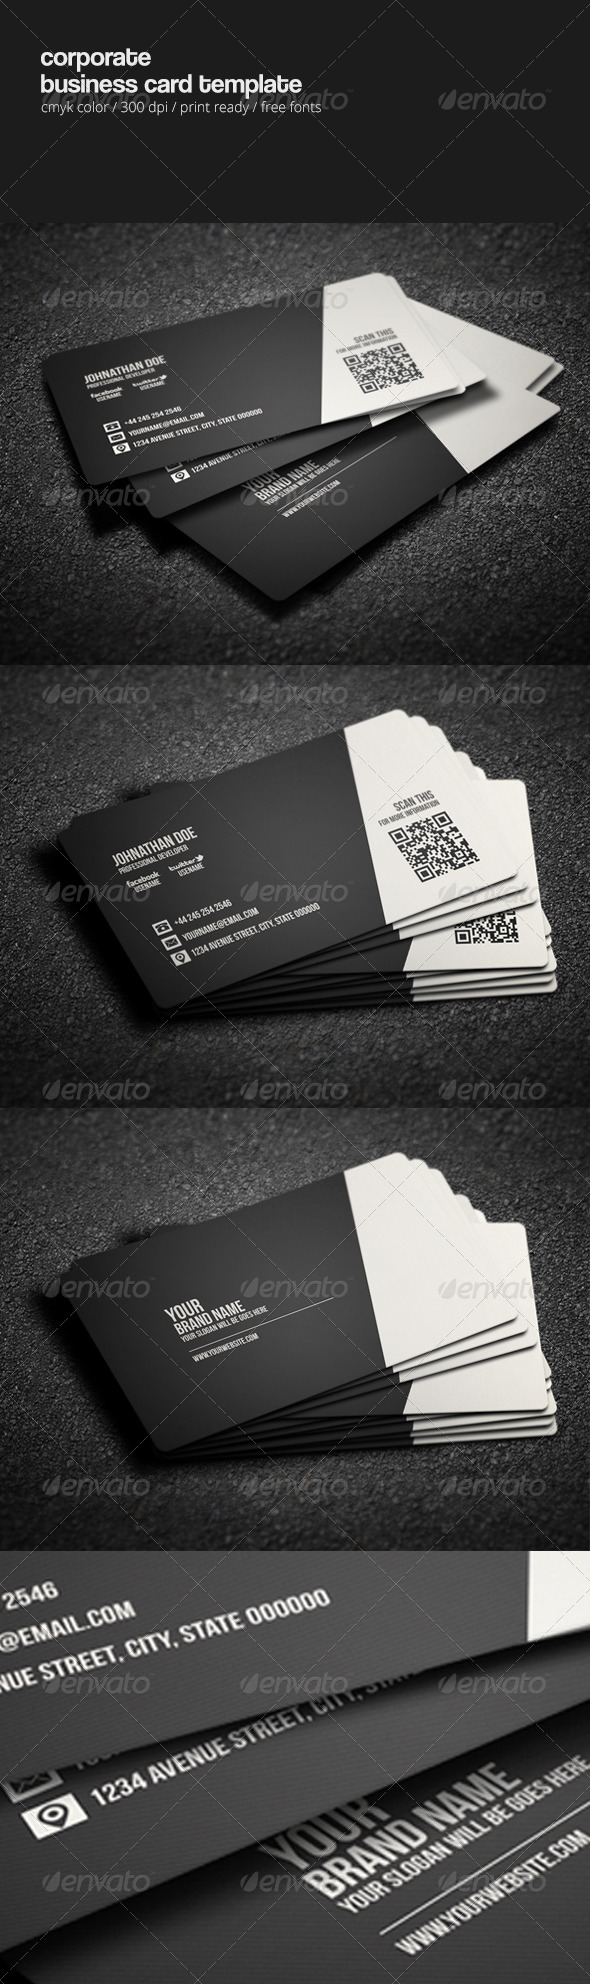 GraphicRiver Corporate Business Card Template 8310431